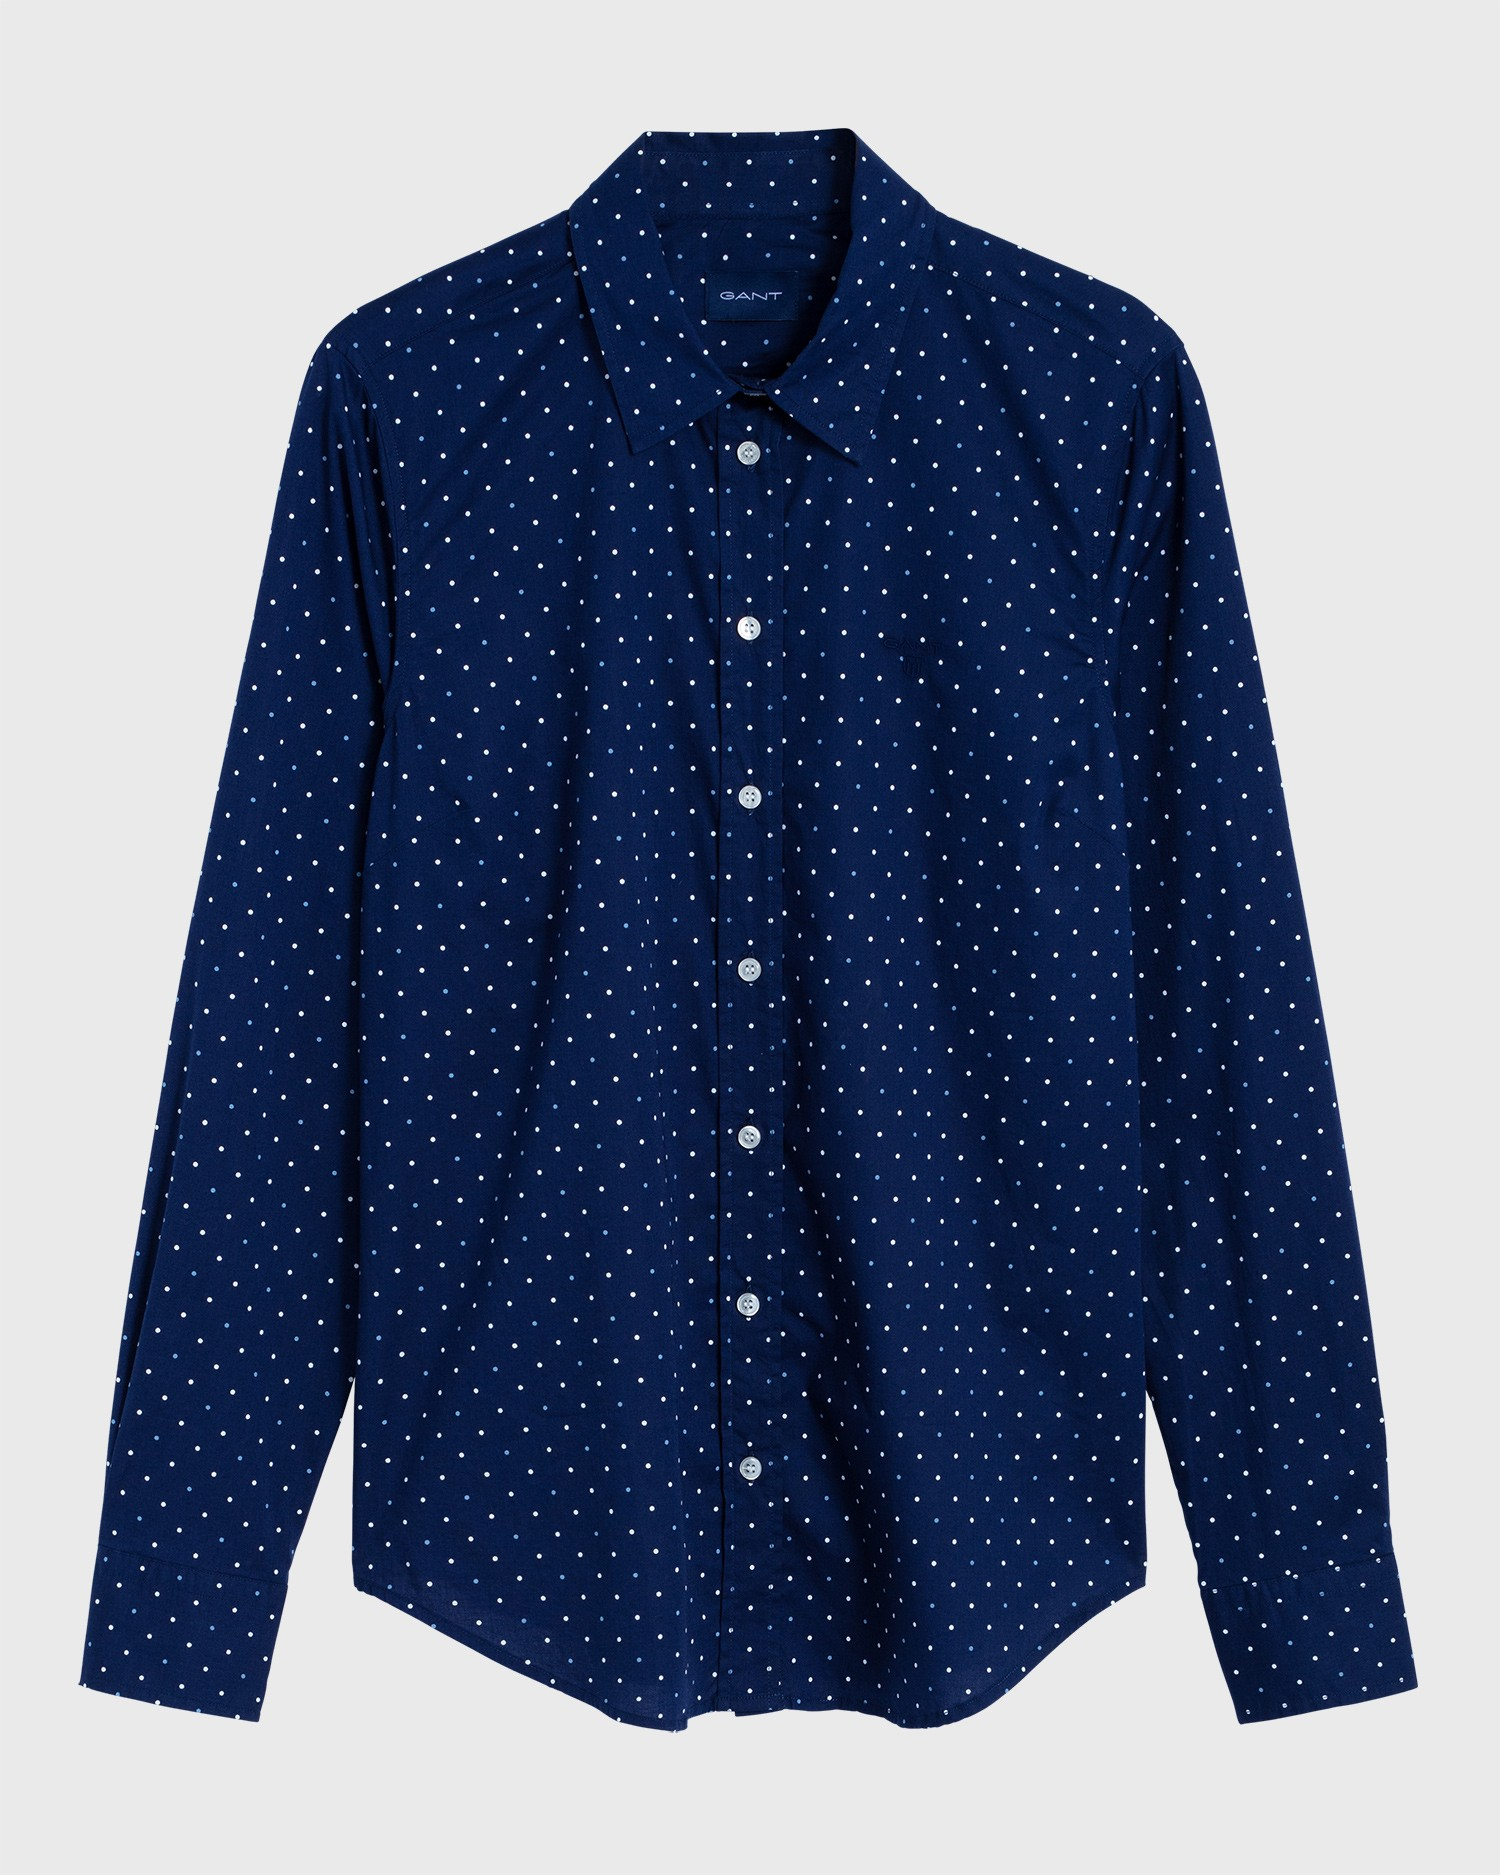 GANT Women's Printed Dot Shirt - 4320078